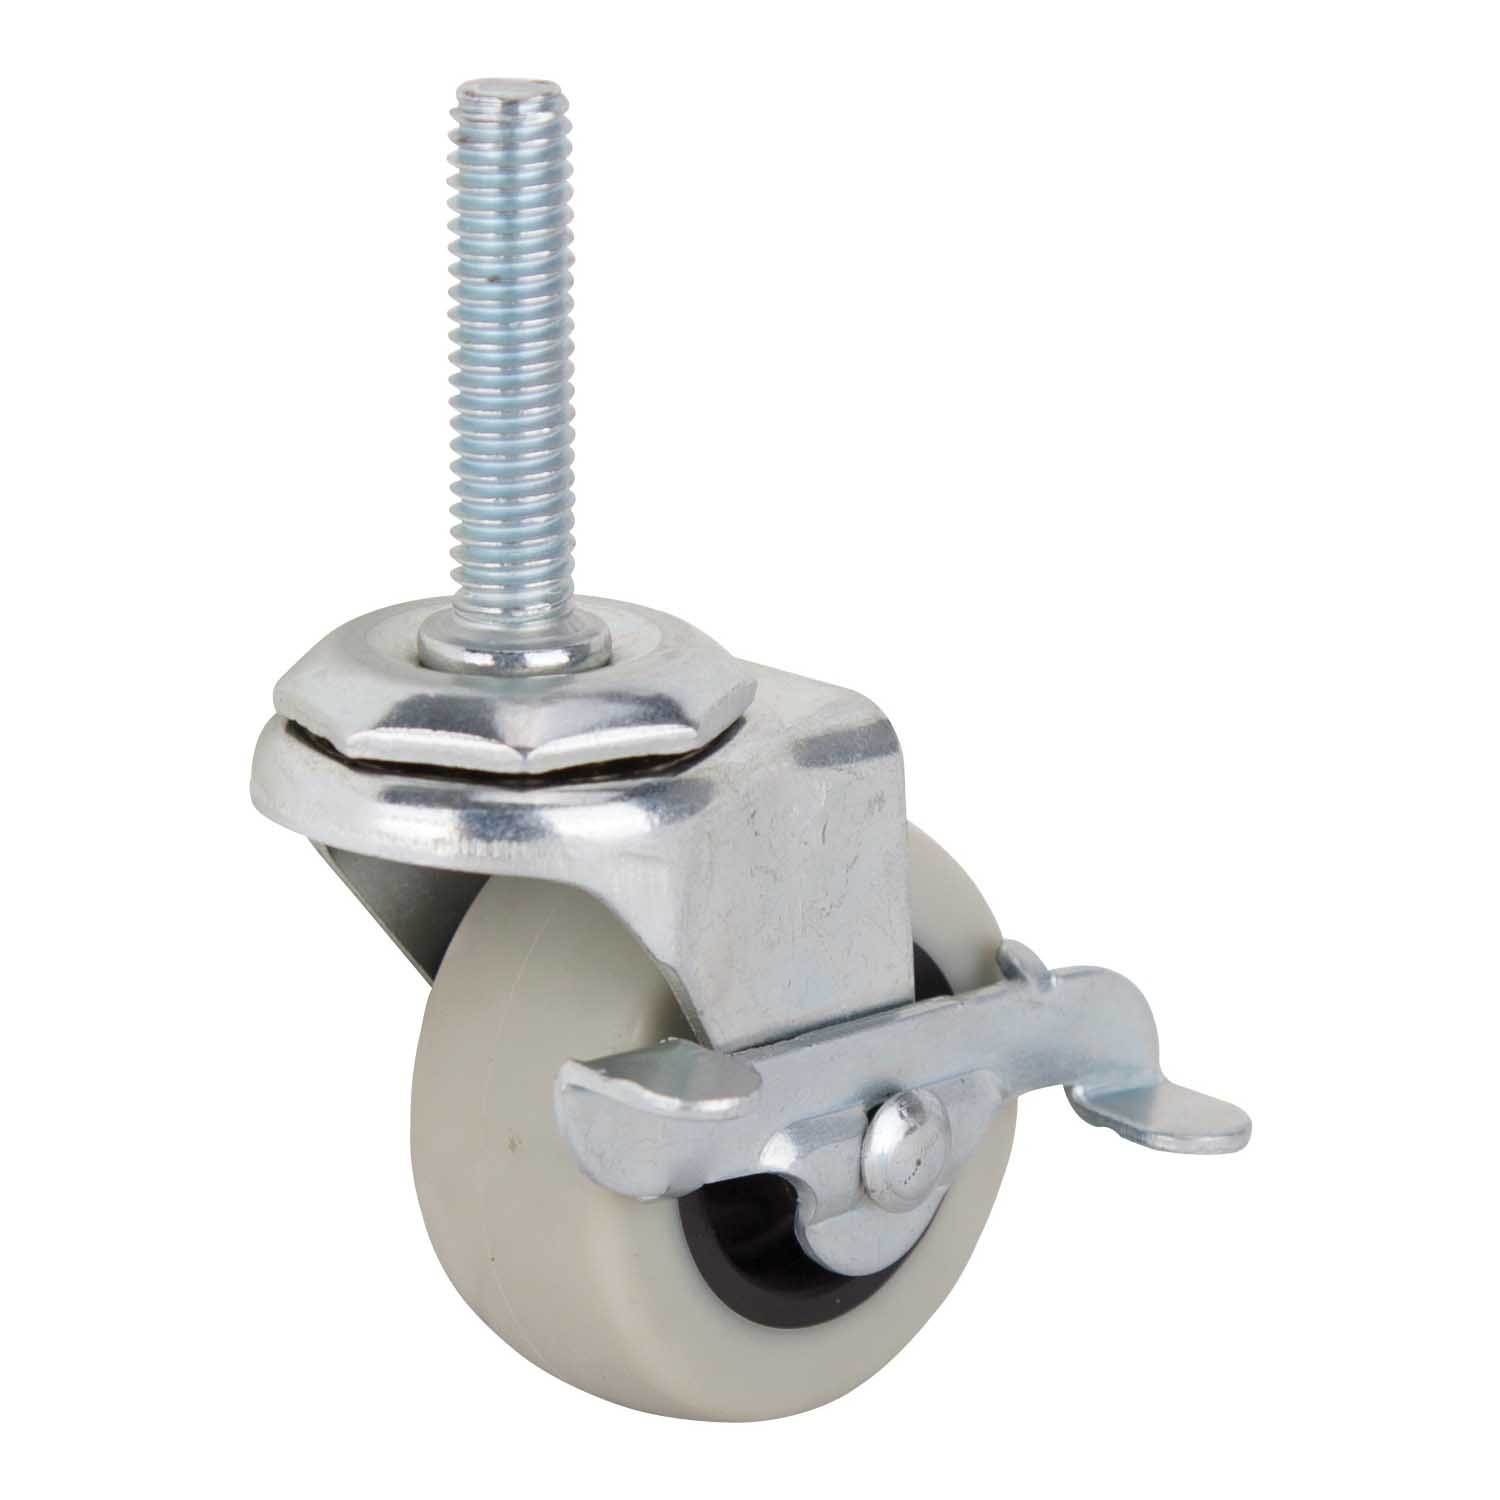 Picture of ProSource JC-N07-G Swivel Caster with Brake, 2 in Dia Wheel, Thermoplastic Rubber Wheel, Gray, 102 lb